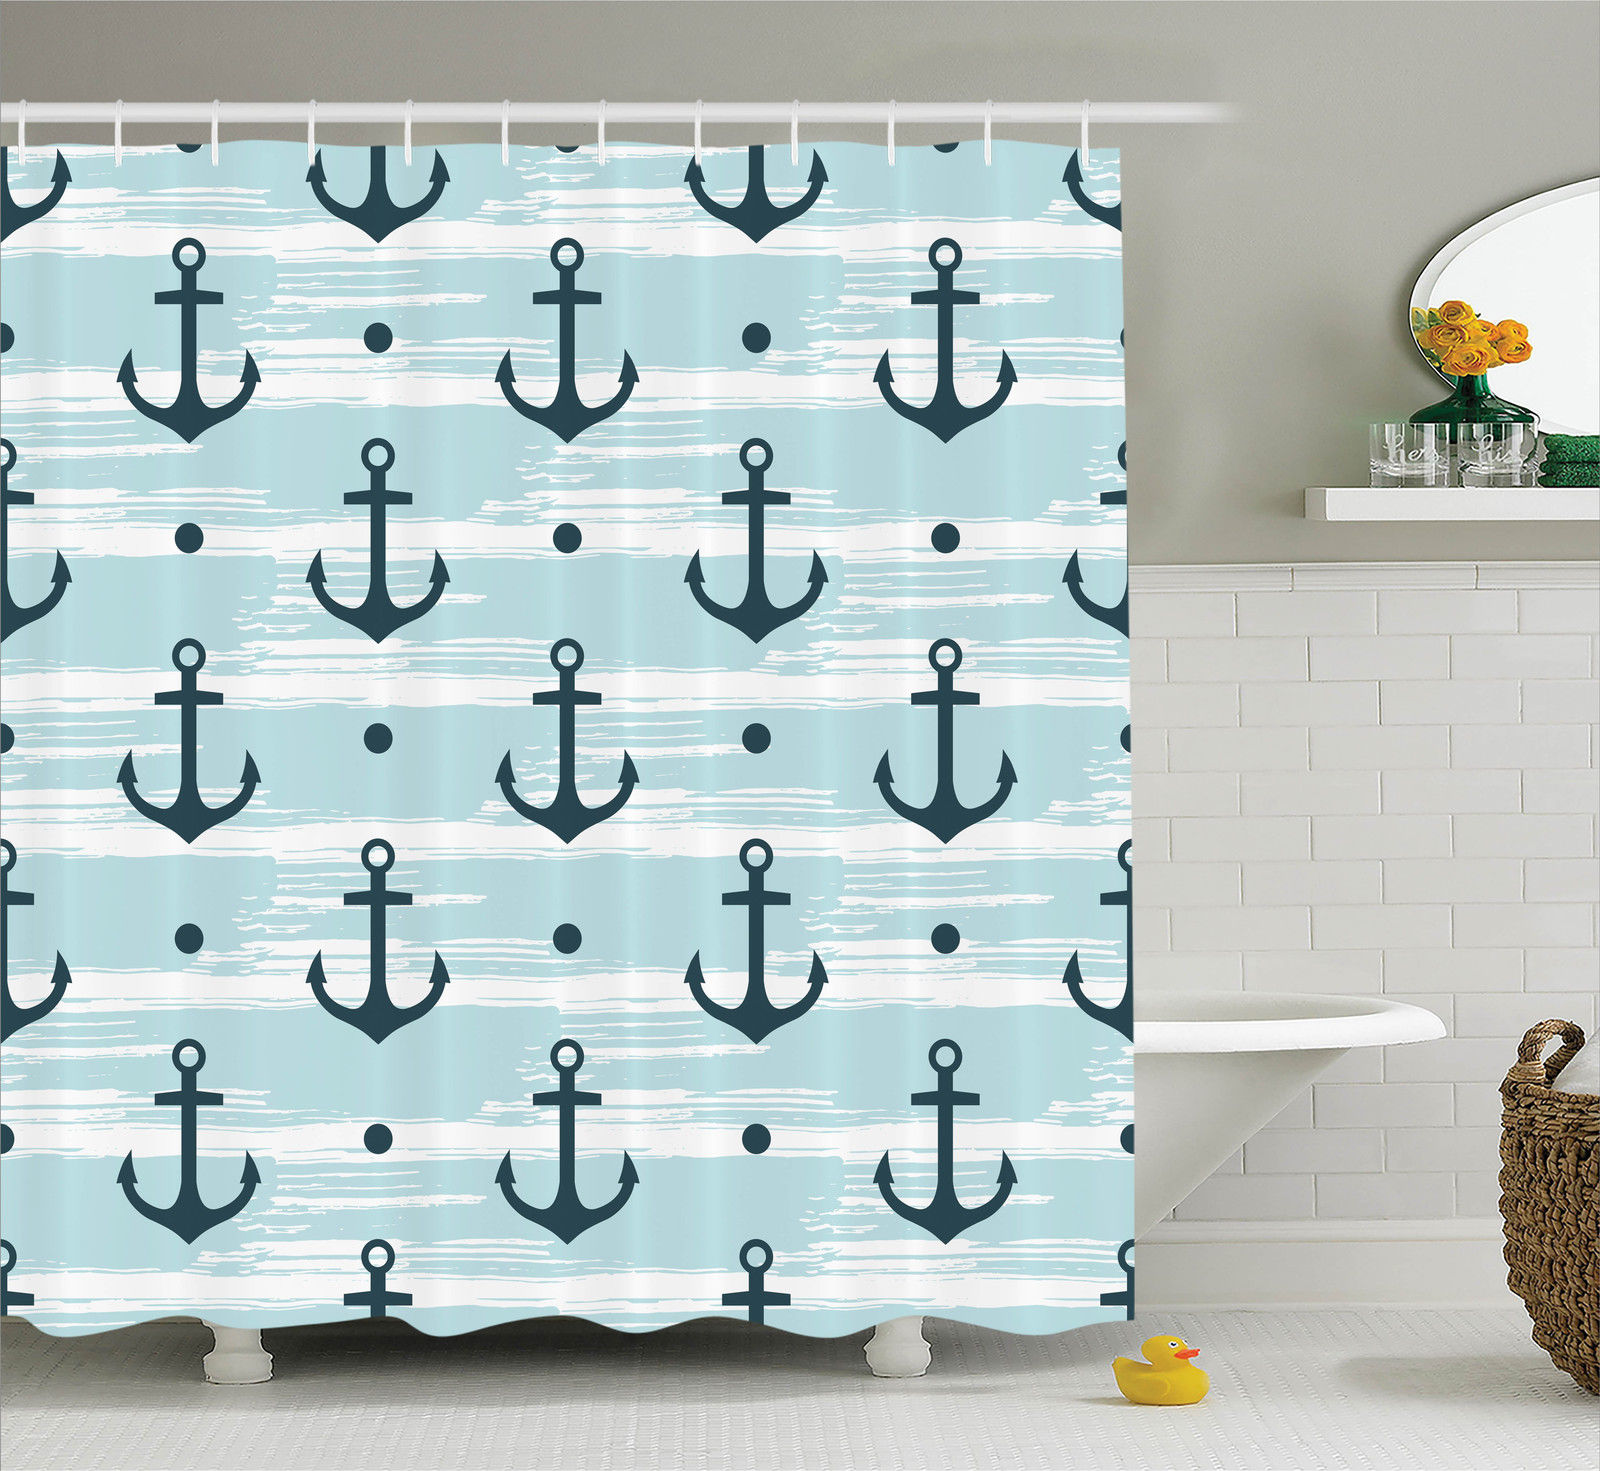 Anchor Decor Shower Curtain Set, Pattern With Anchors Modern Stylized  Adventurous Striped Trendy Coastline Fun